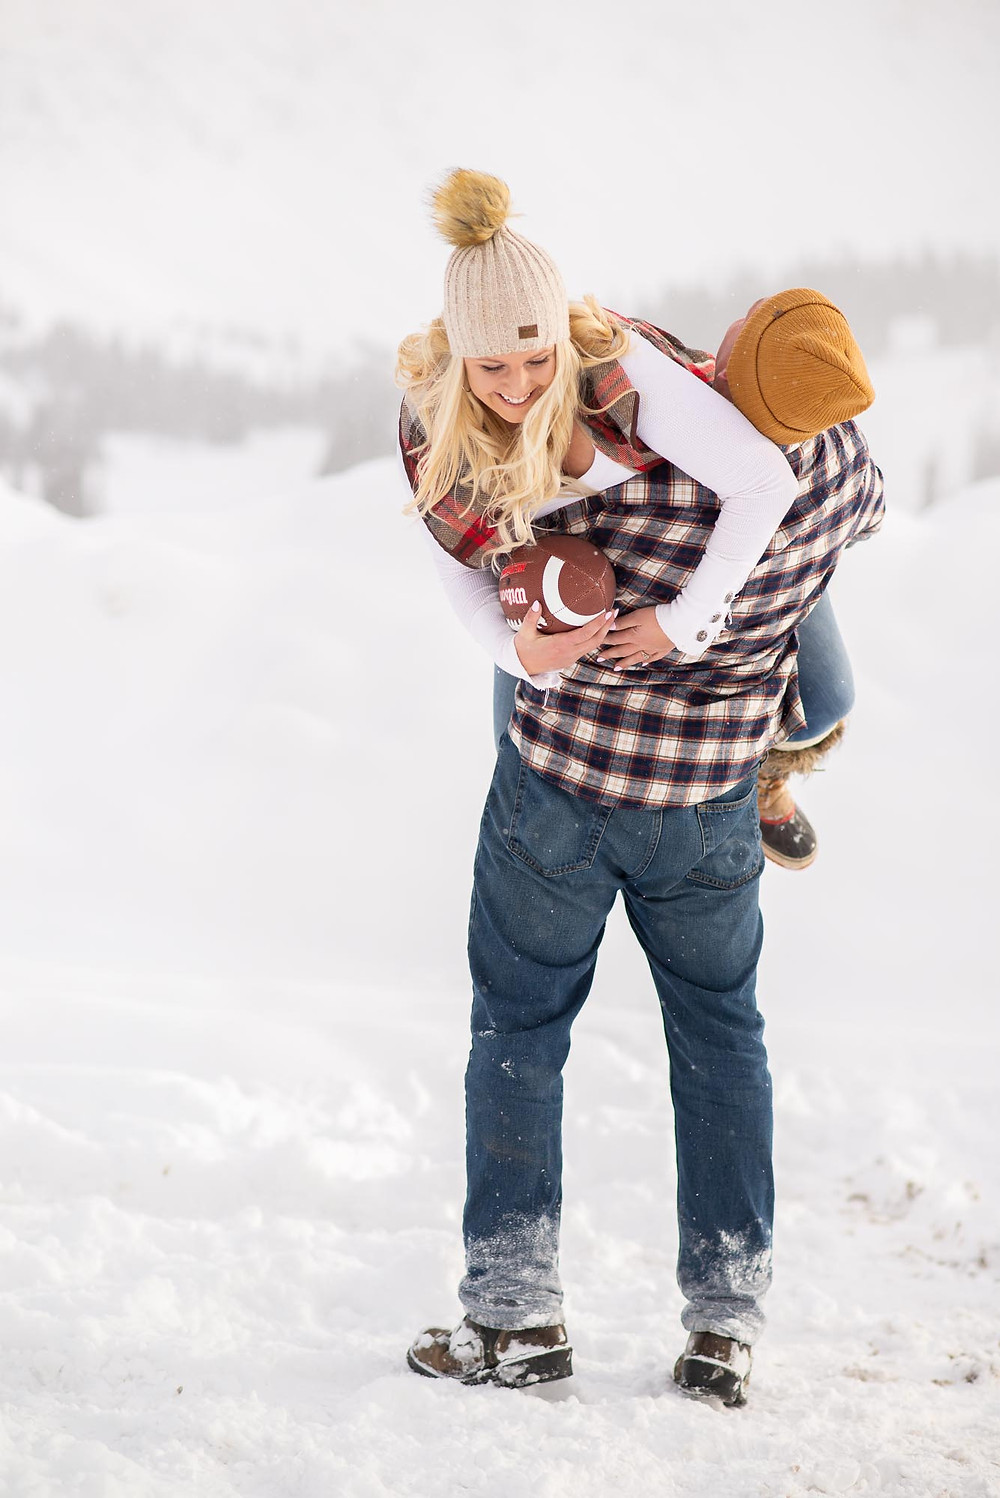 Engagement Photos with Football Tackle